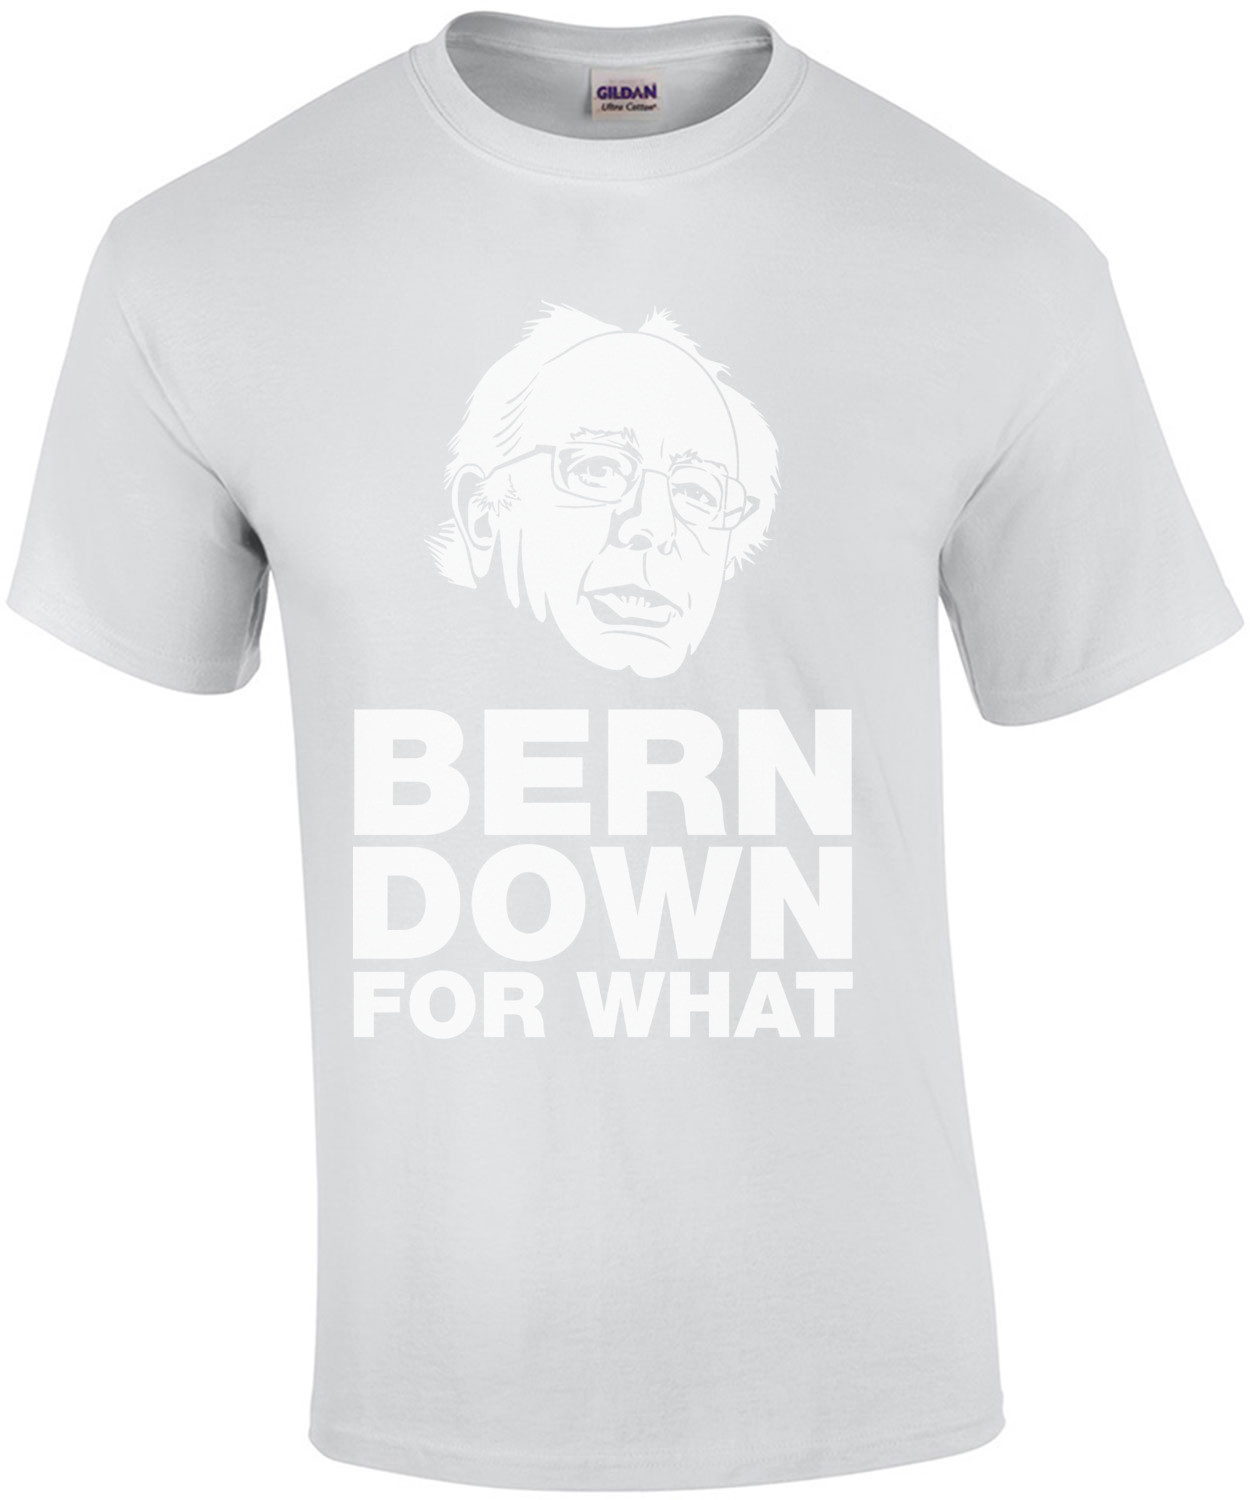 Bern Down For What Bernie Sanders T-Shirt